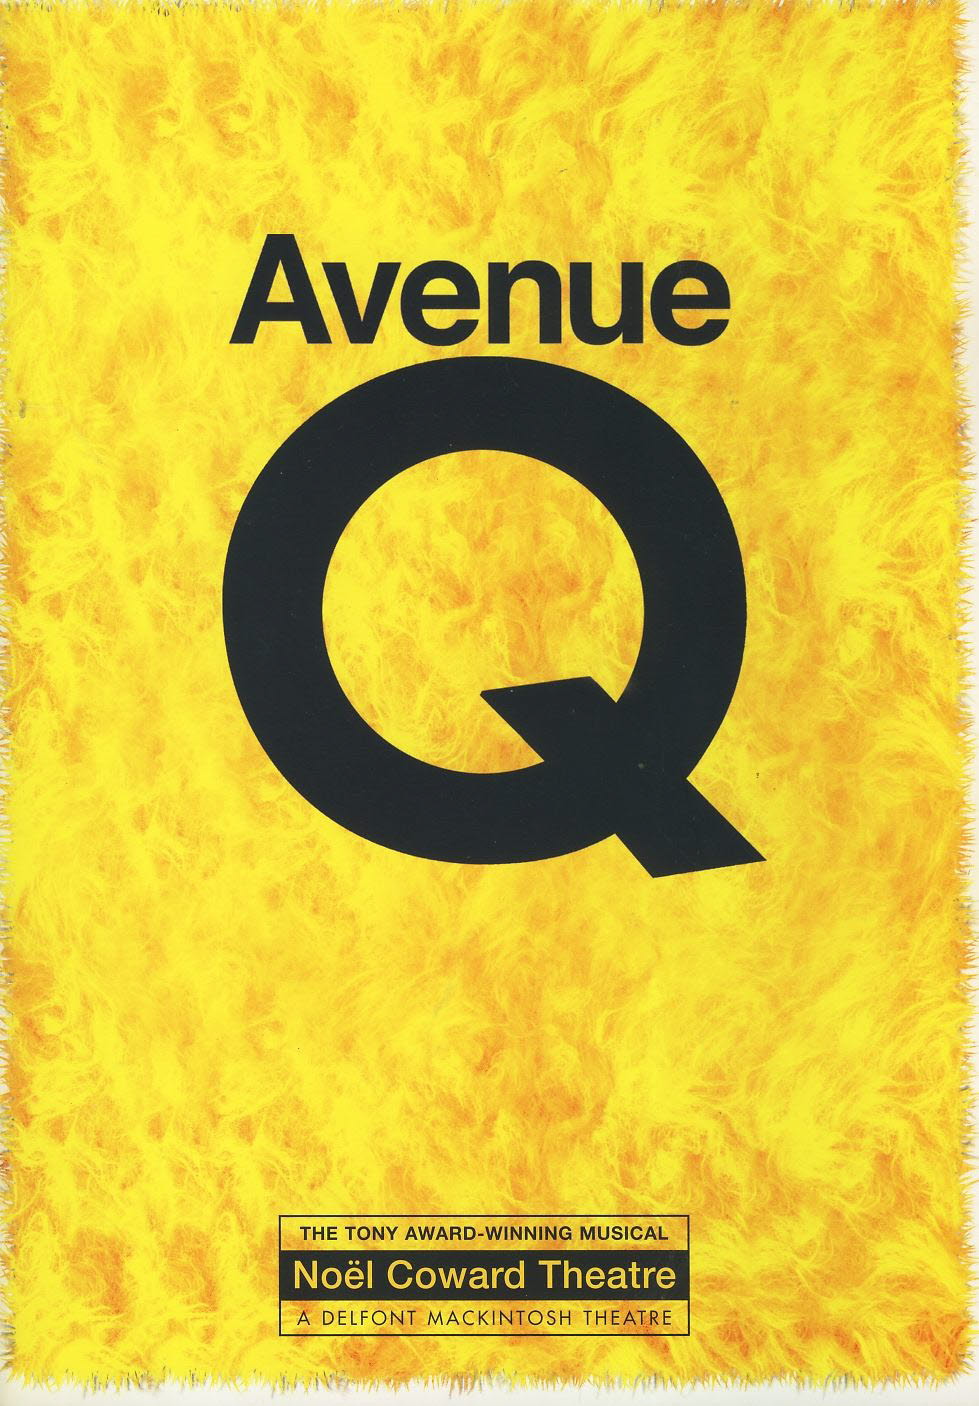 Avenue Q Noel Coward Theatre Programme 2006 refb1594 Used Programme in Very Good Condition.